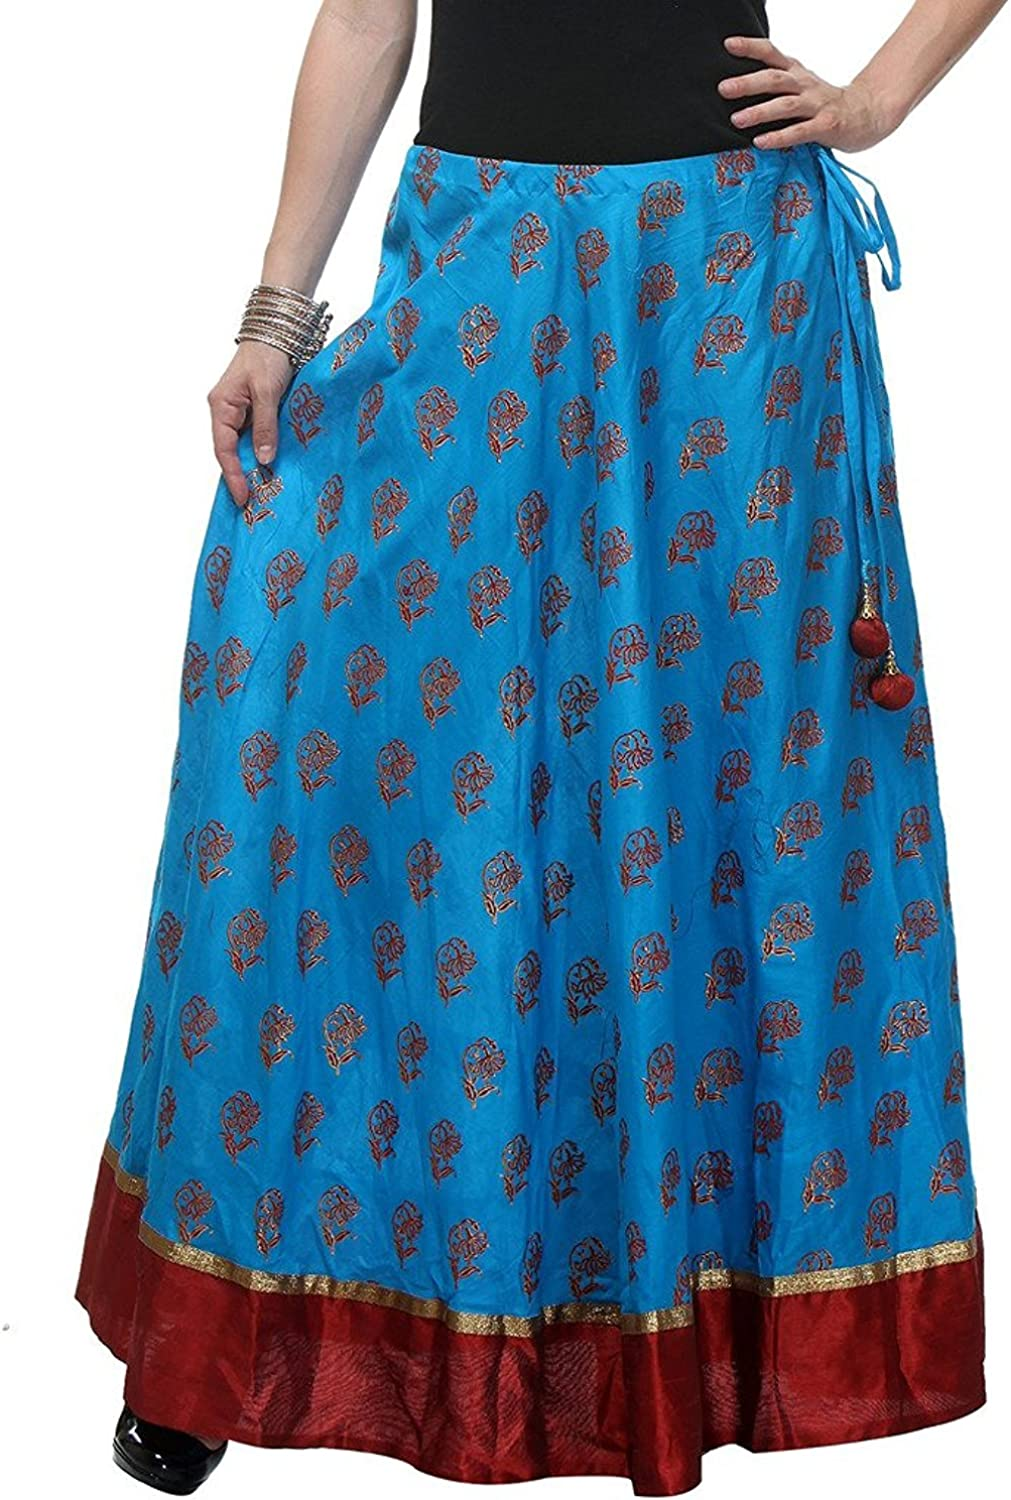 Indian Handicrfats Export Women's Cotton Hand Block Printed Long Skirt (Turquoise bluee_Freesize)